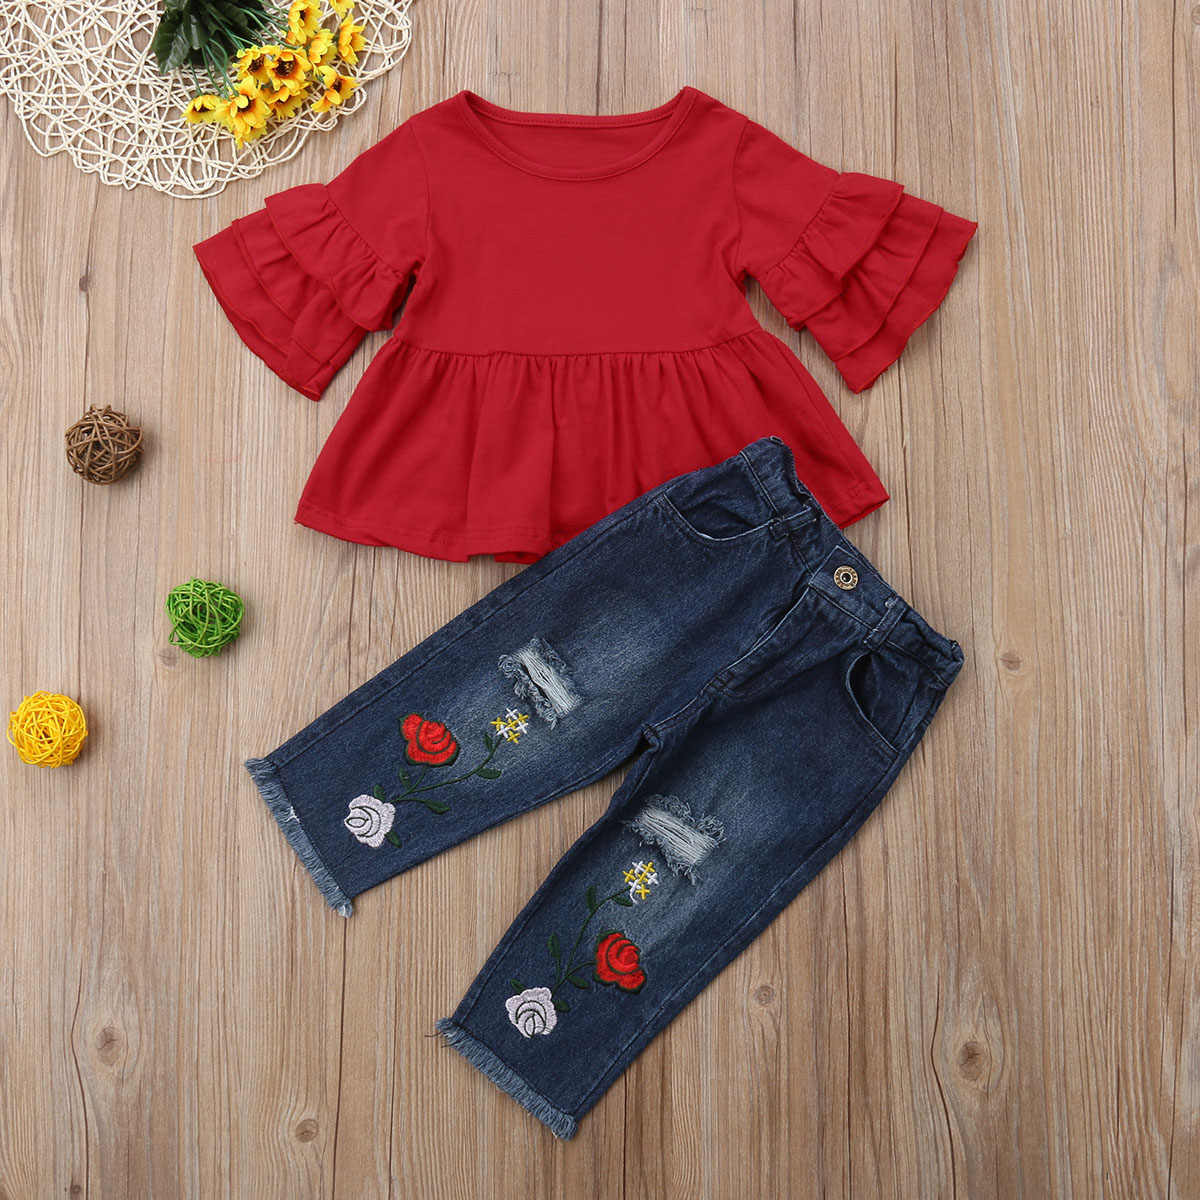 2Pcs Toddler Infant Girls Outfits Long Sleeve Tops Denim pants Kids Clothes Set